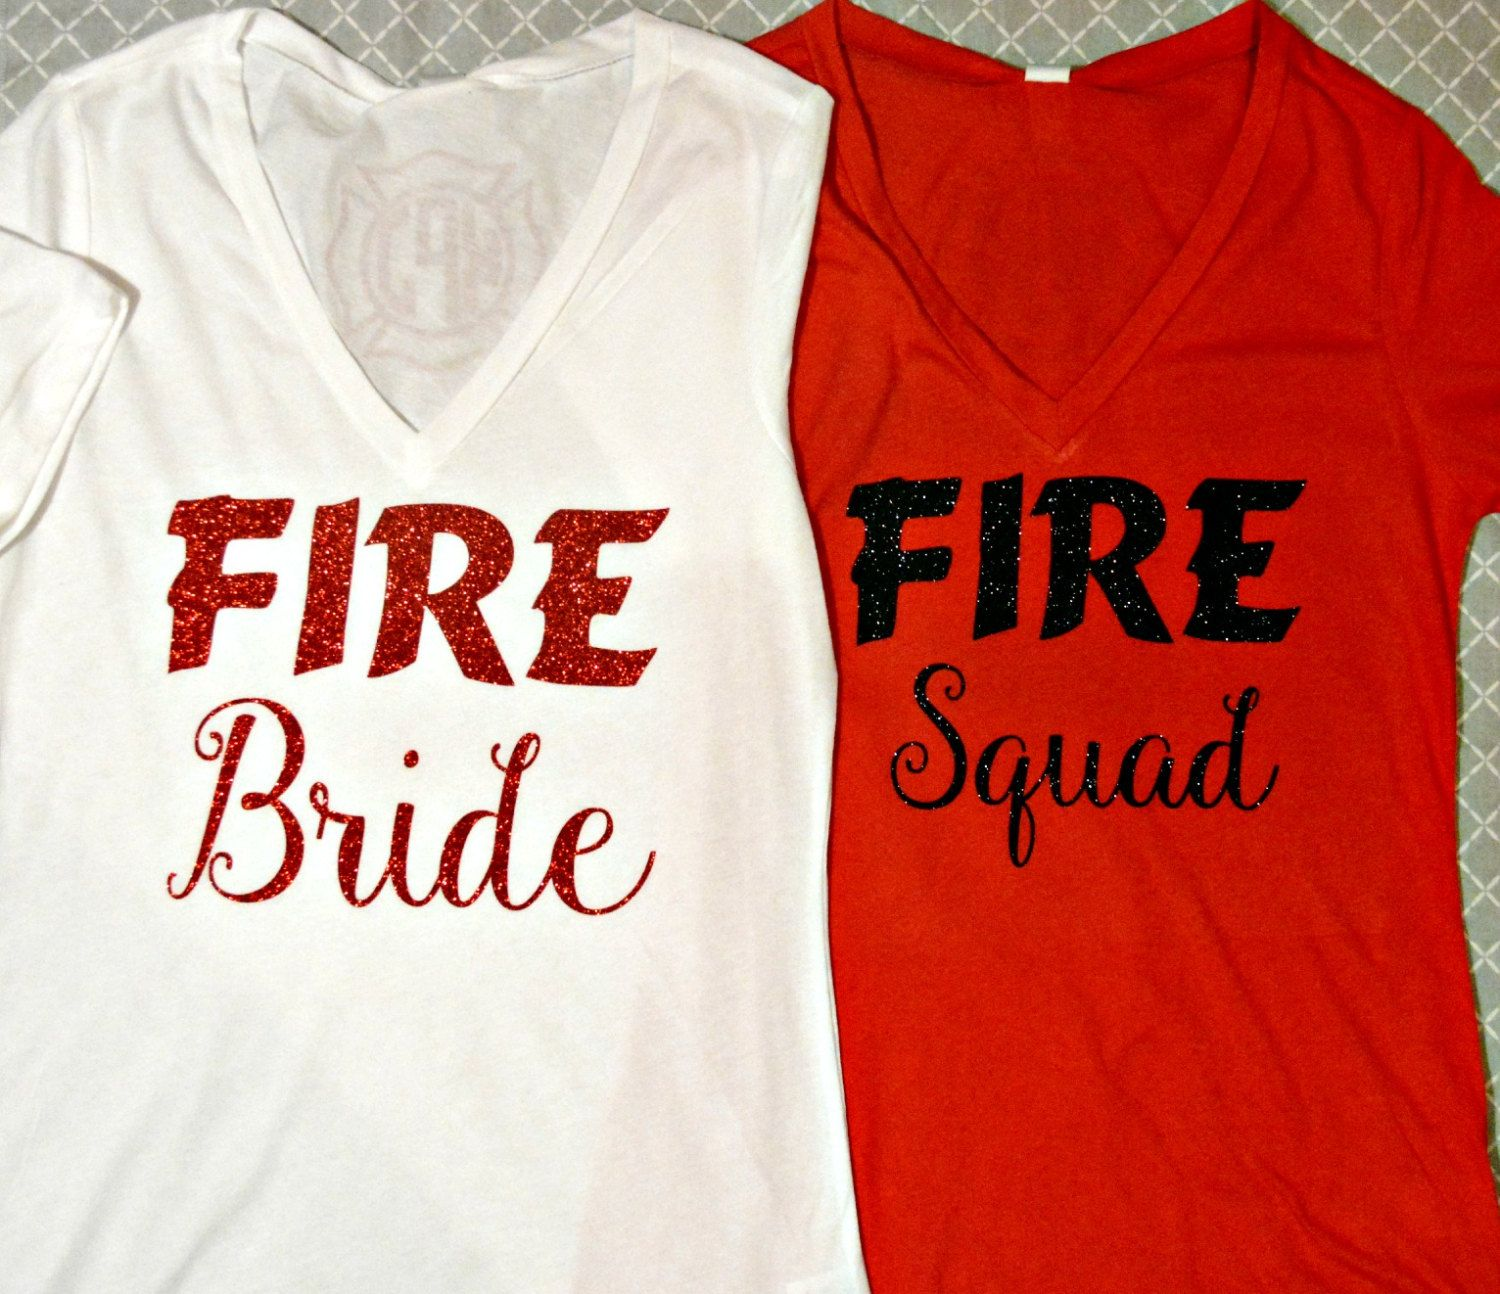 Firefighter Wedding Themes Ideas: Firefighter Bride To Be! Bridal Shirts By Sillylittlegirls